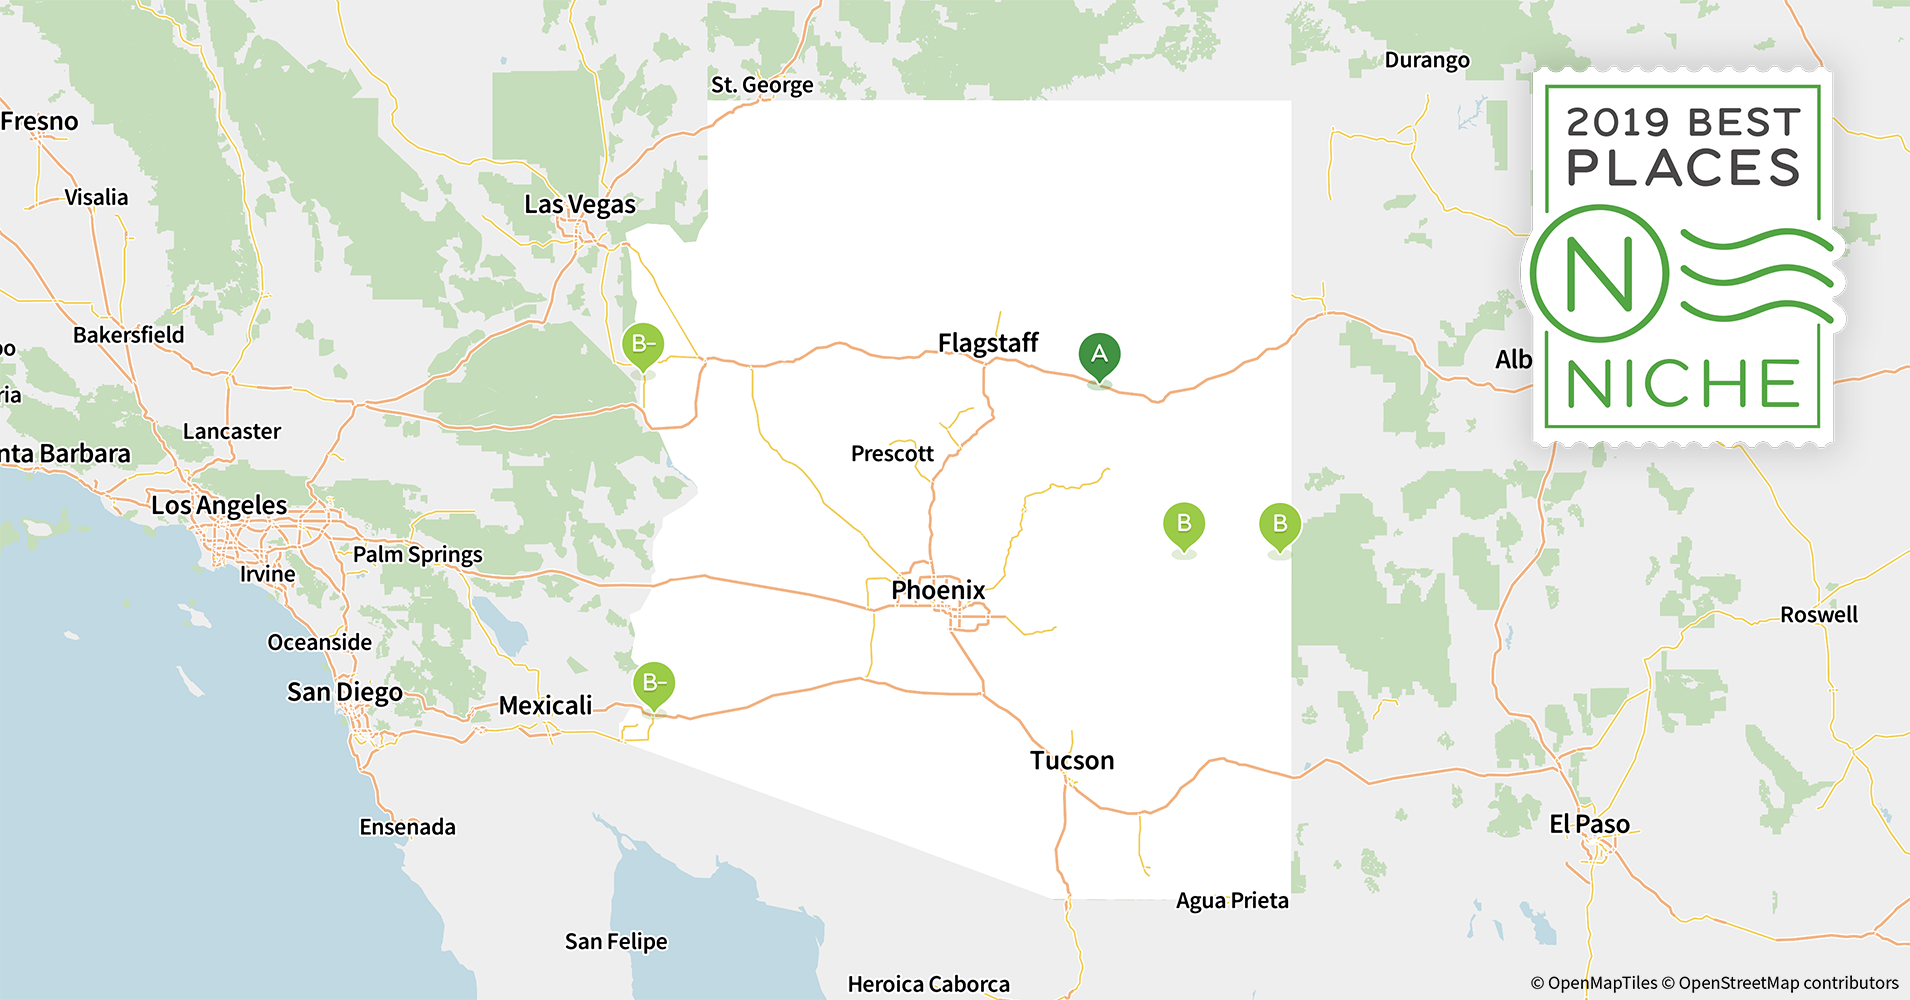 Map Of Arizona Towns And Cities.2019 Best Places To Live In Arizona Niche